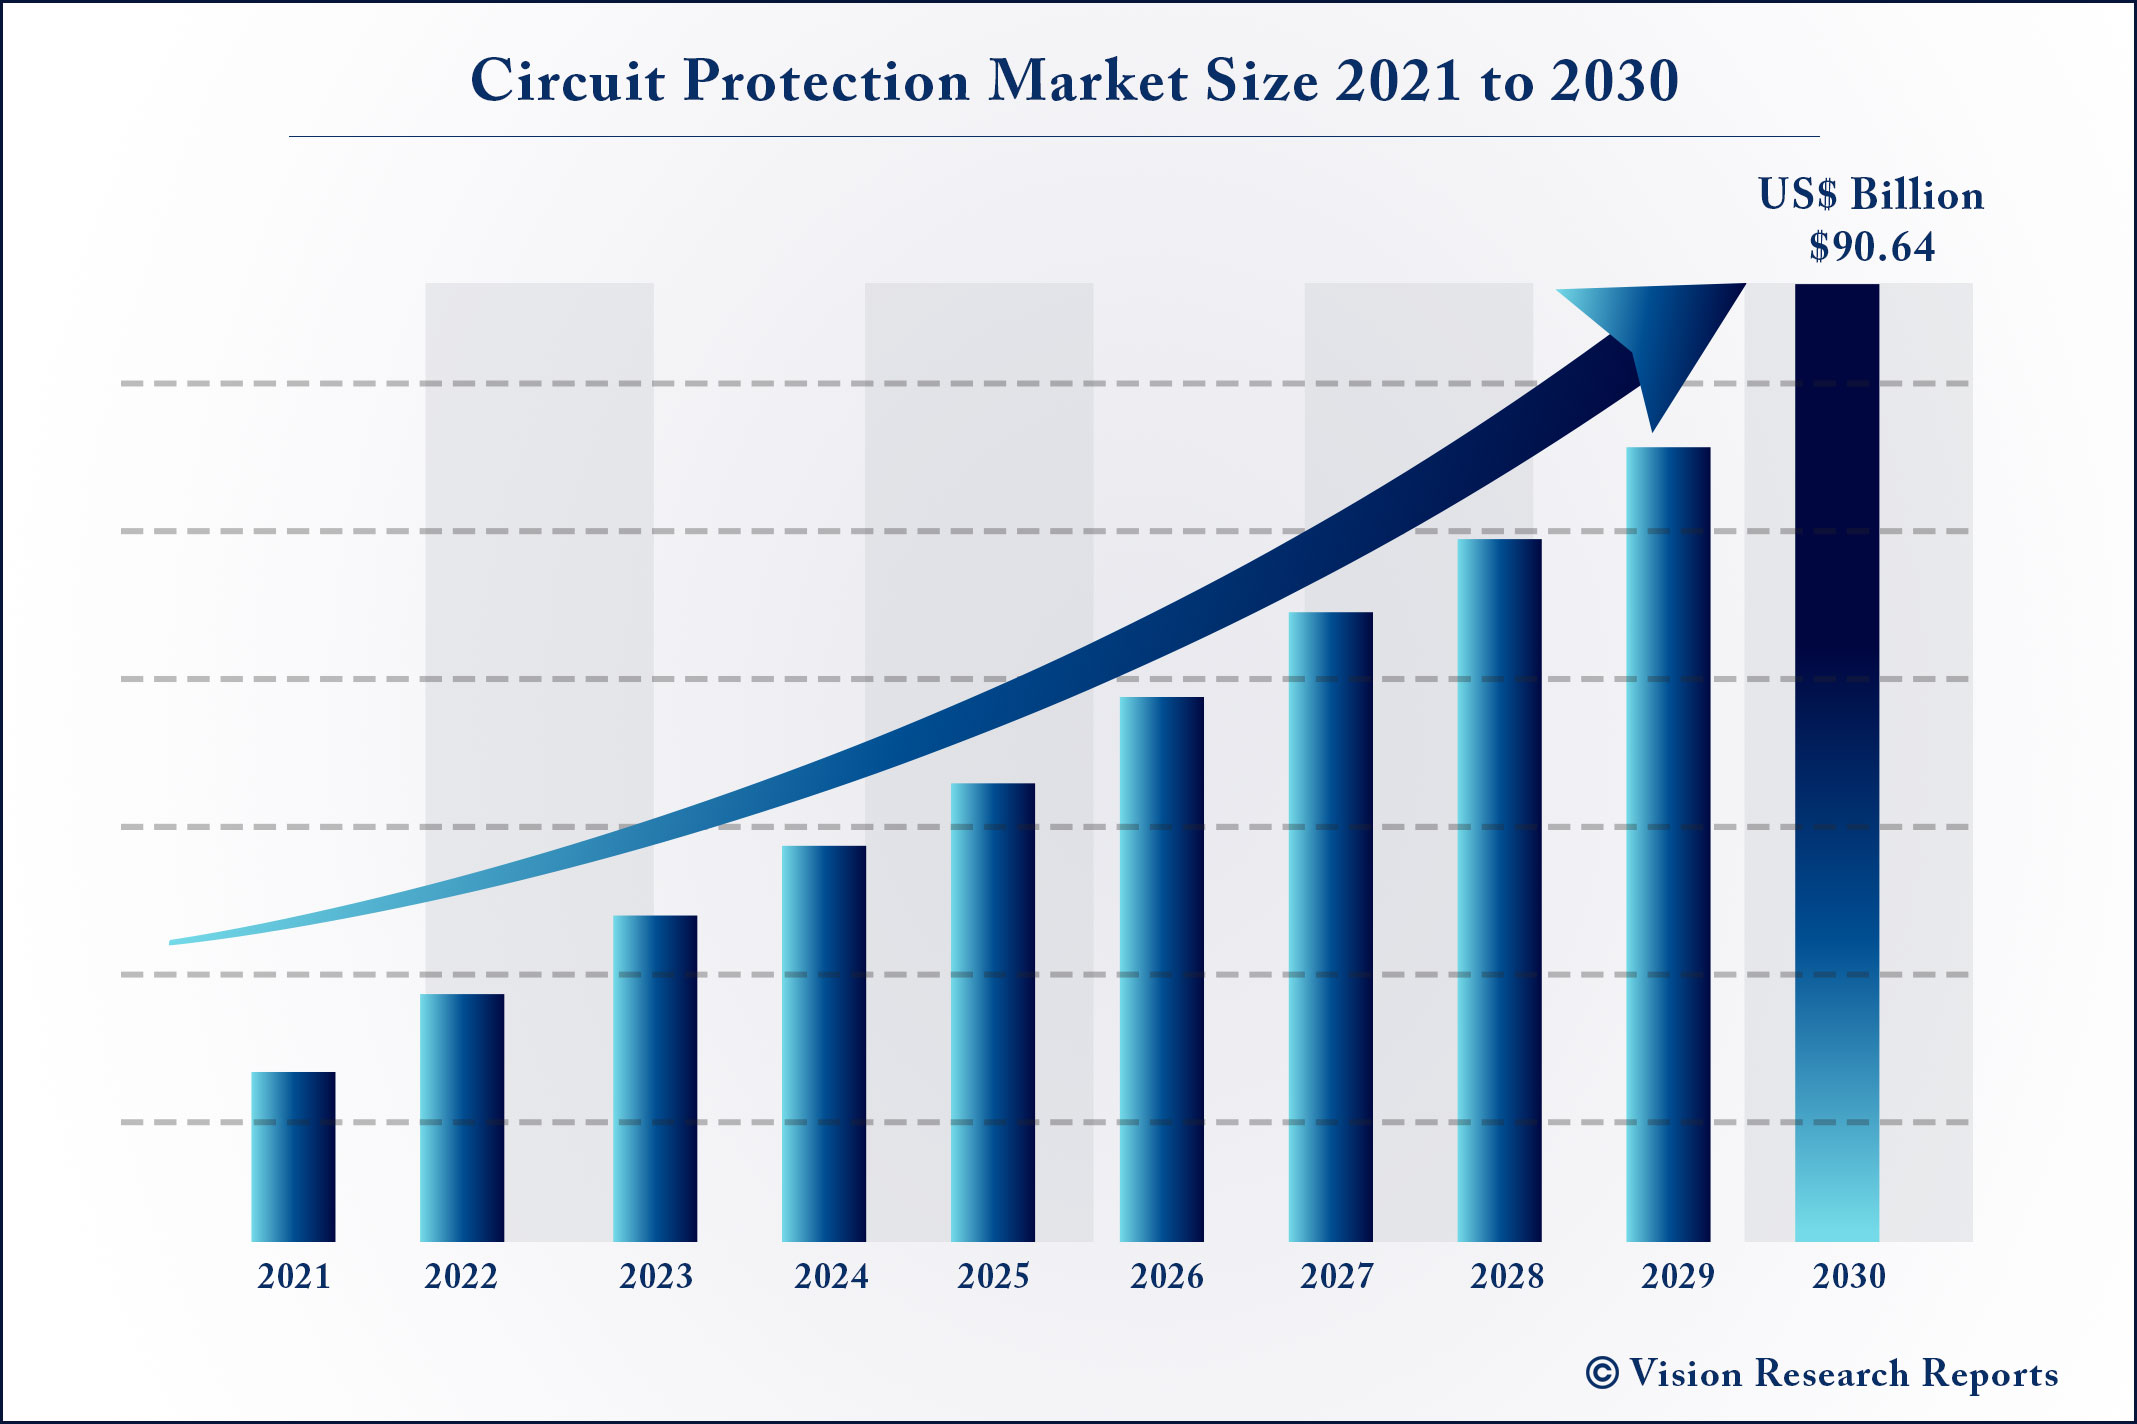 Circuit Protection Market Size 2021 to 2030